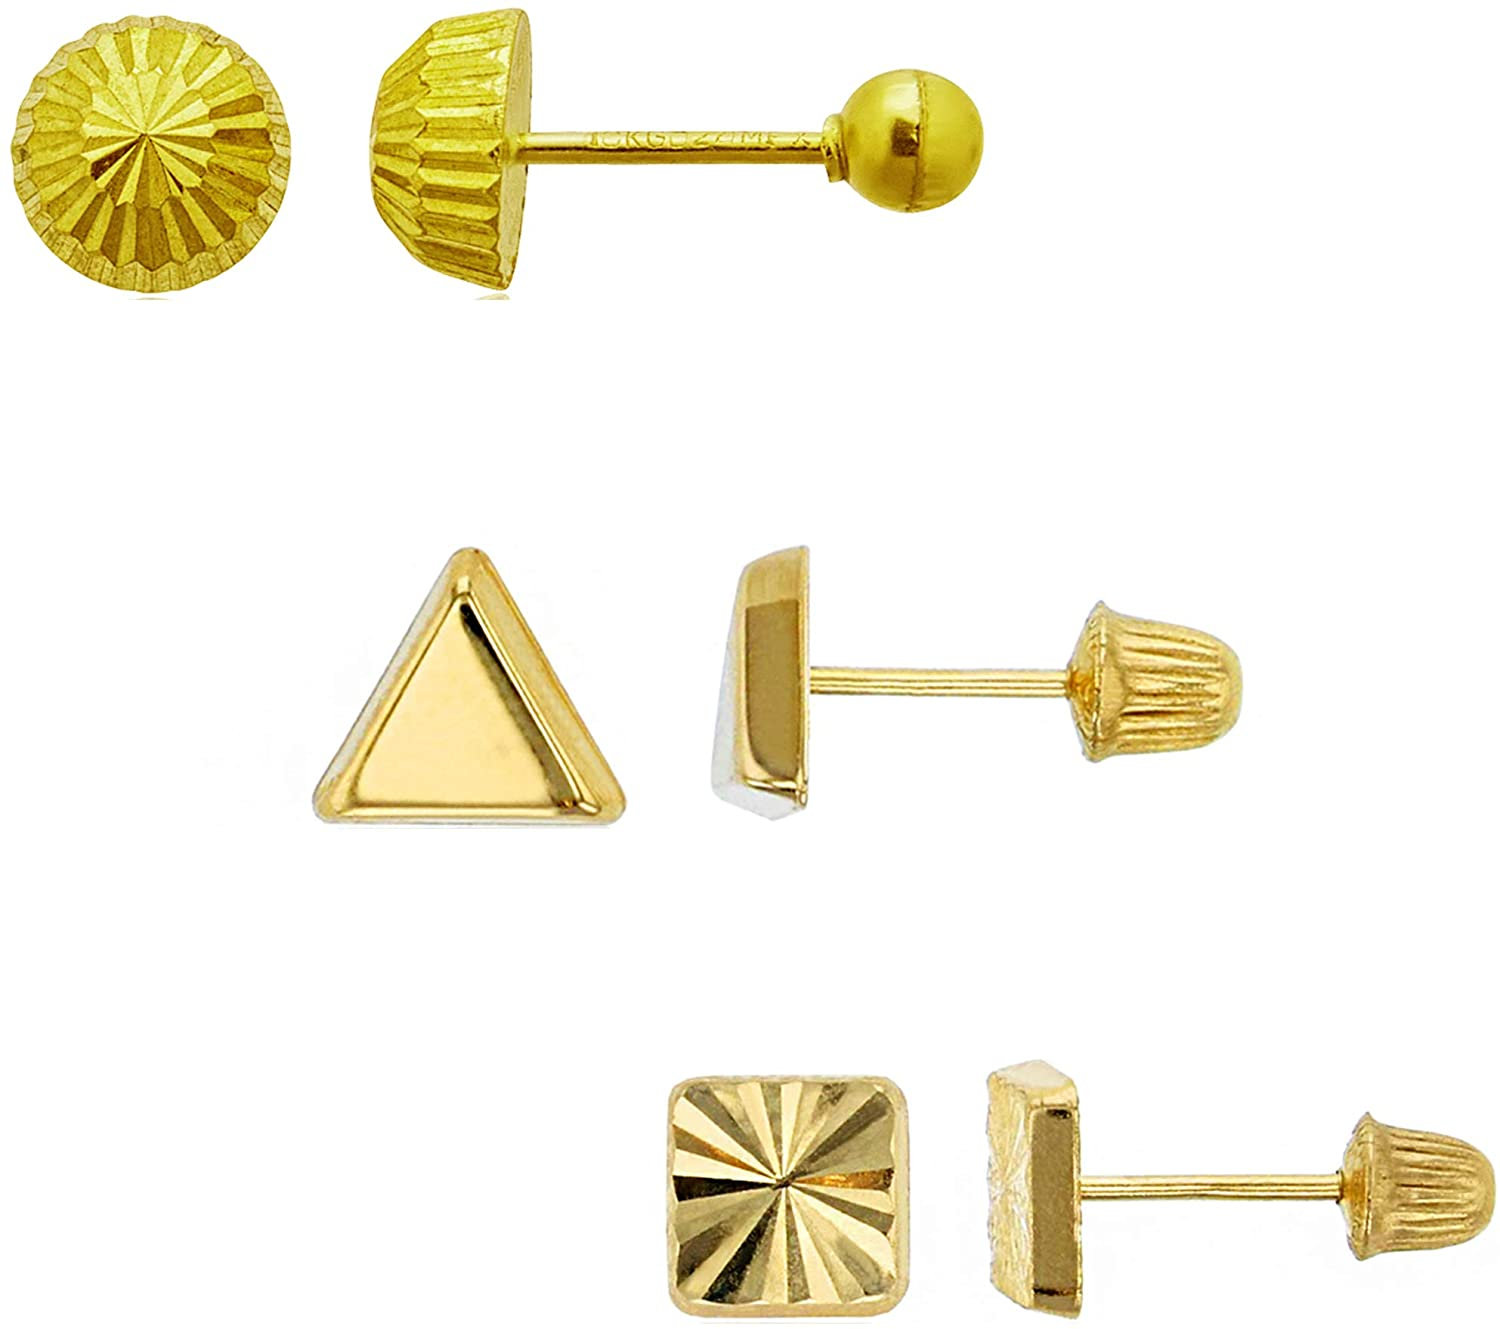 14K Yellow Gold DC 5mm Half-Ball, Polished Triangle & DC Square Screwback Earring Set